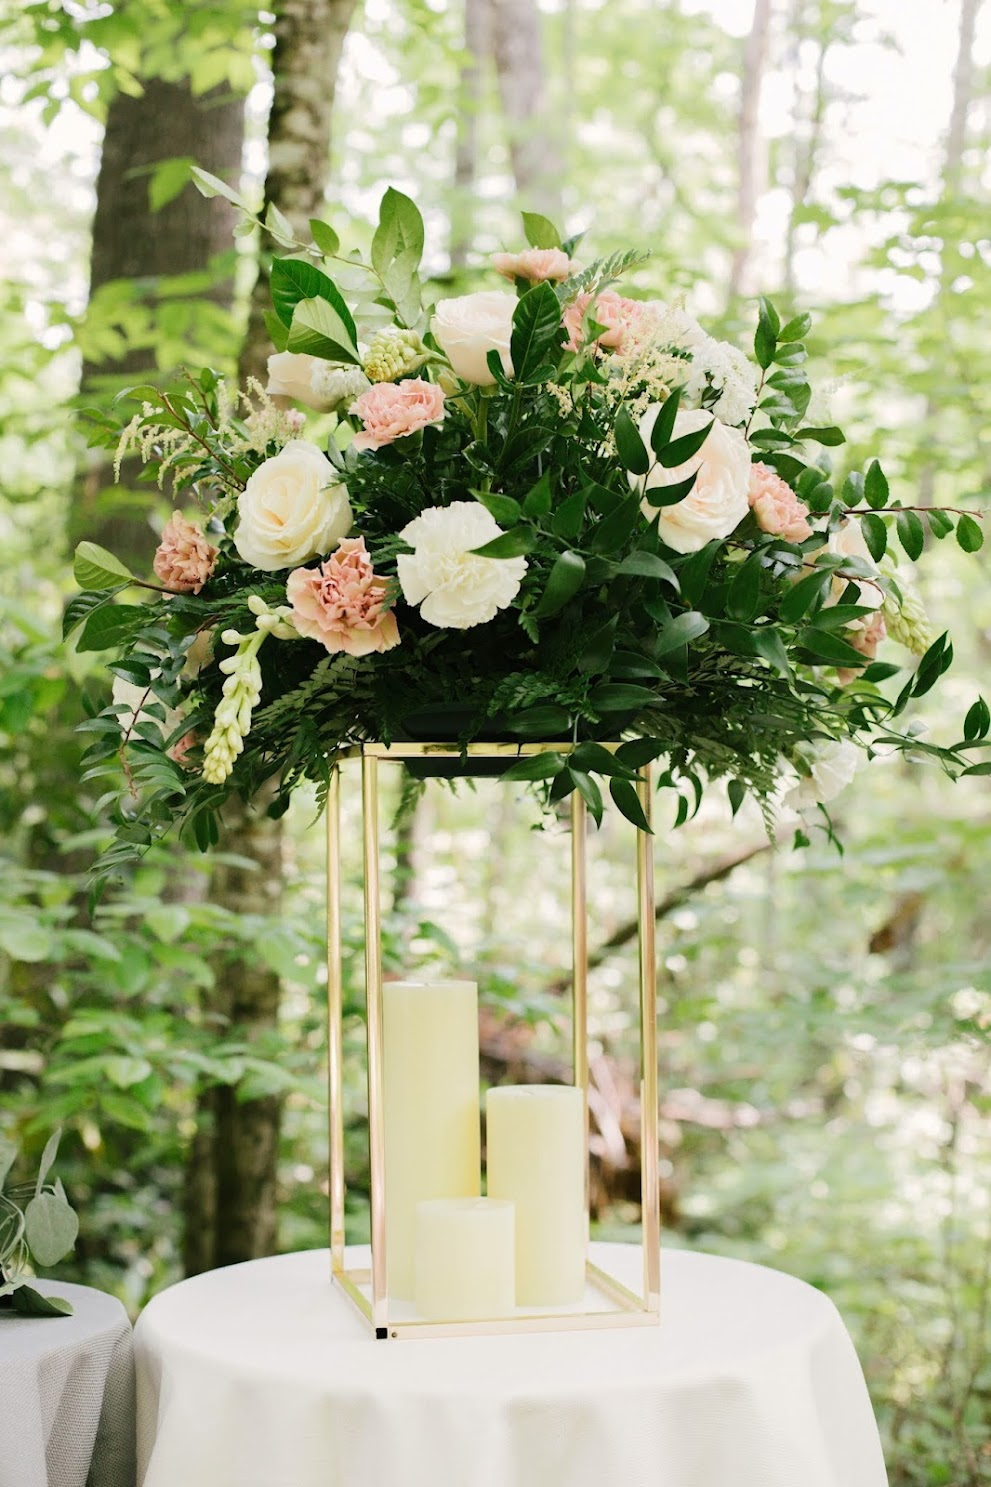 If you think the EVERYDAY wedding centerpiece designs can stand up to this, you better think again!